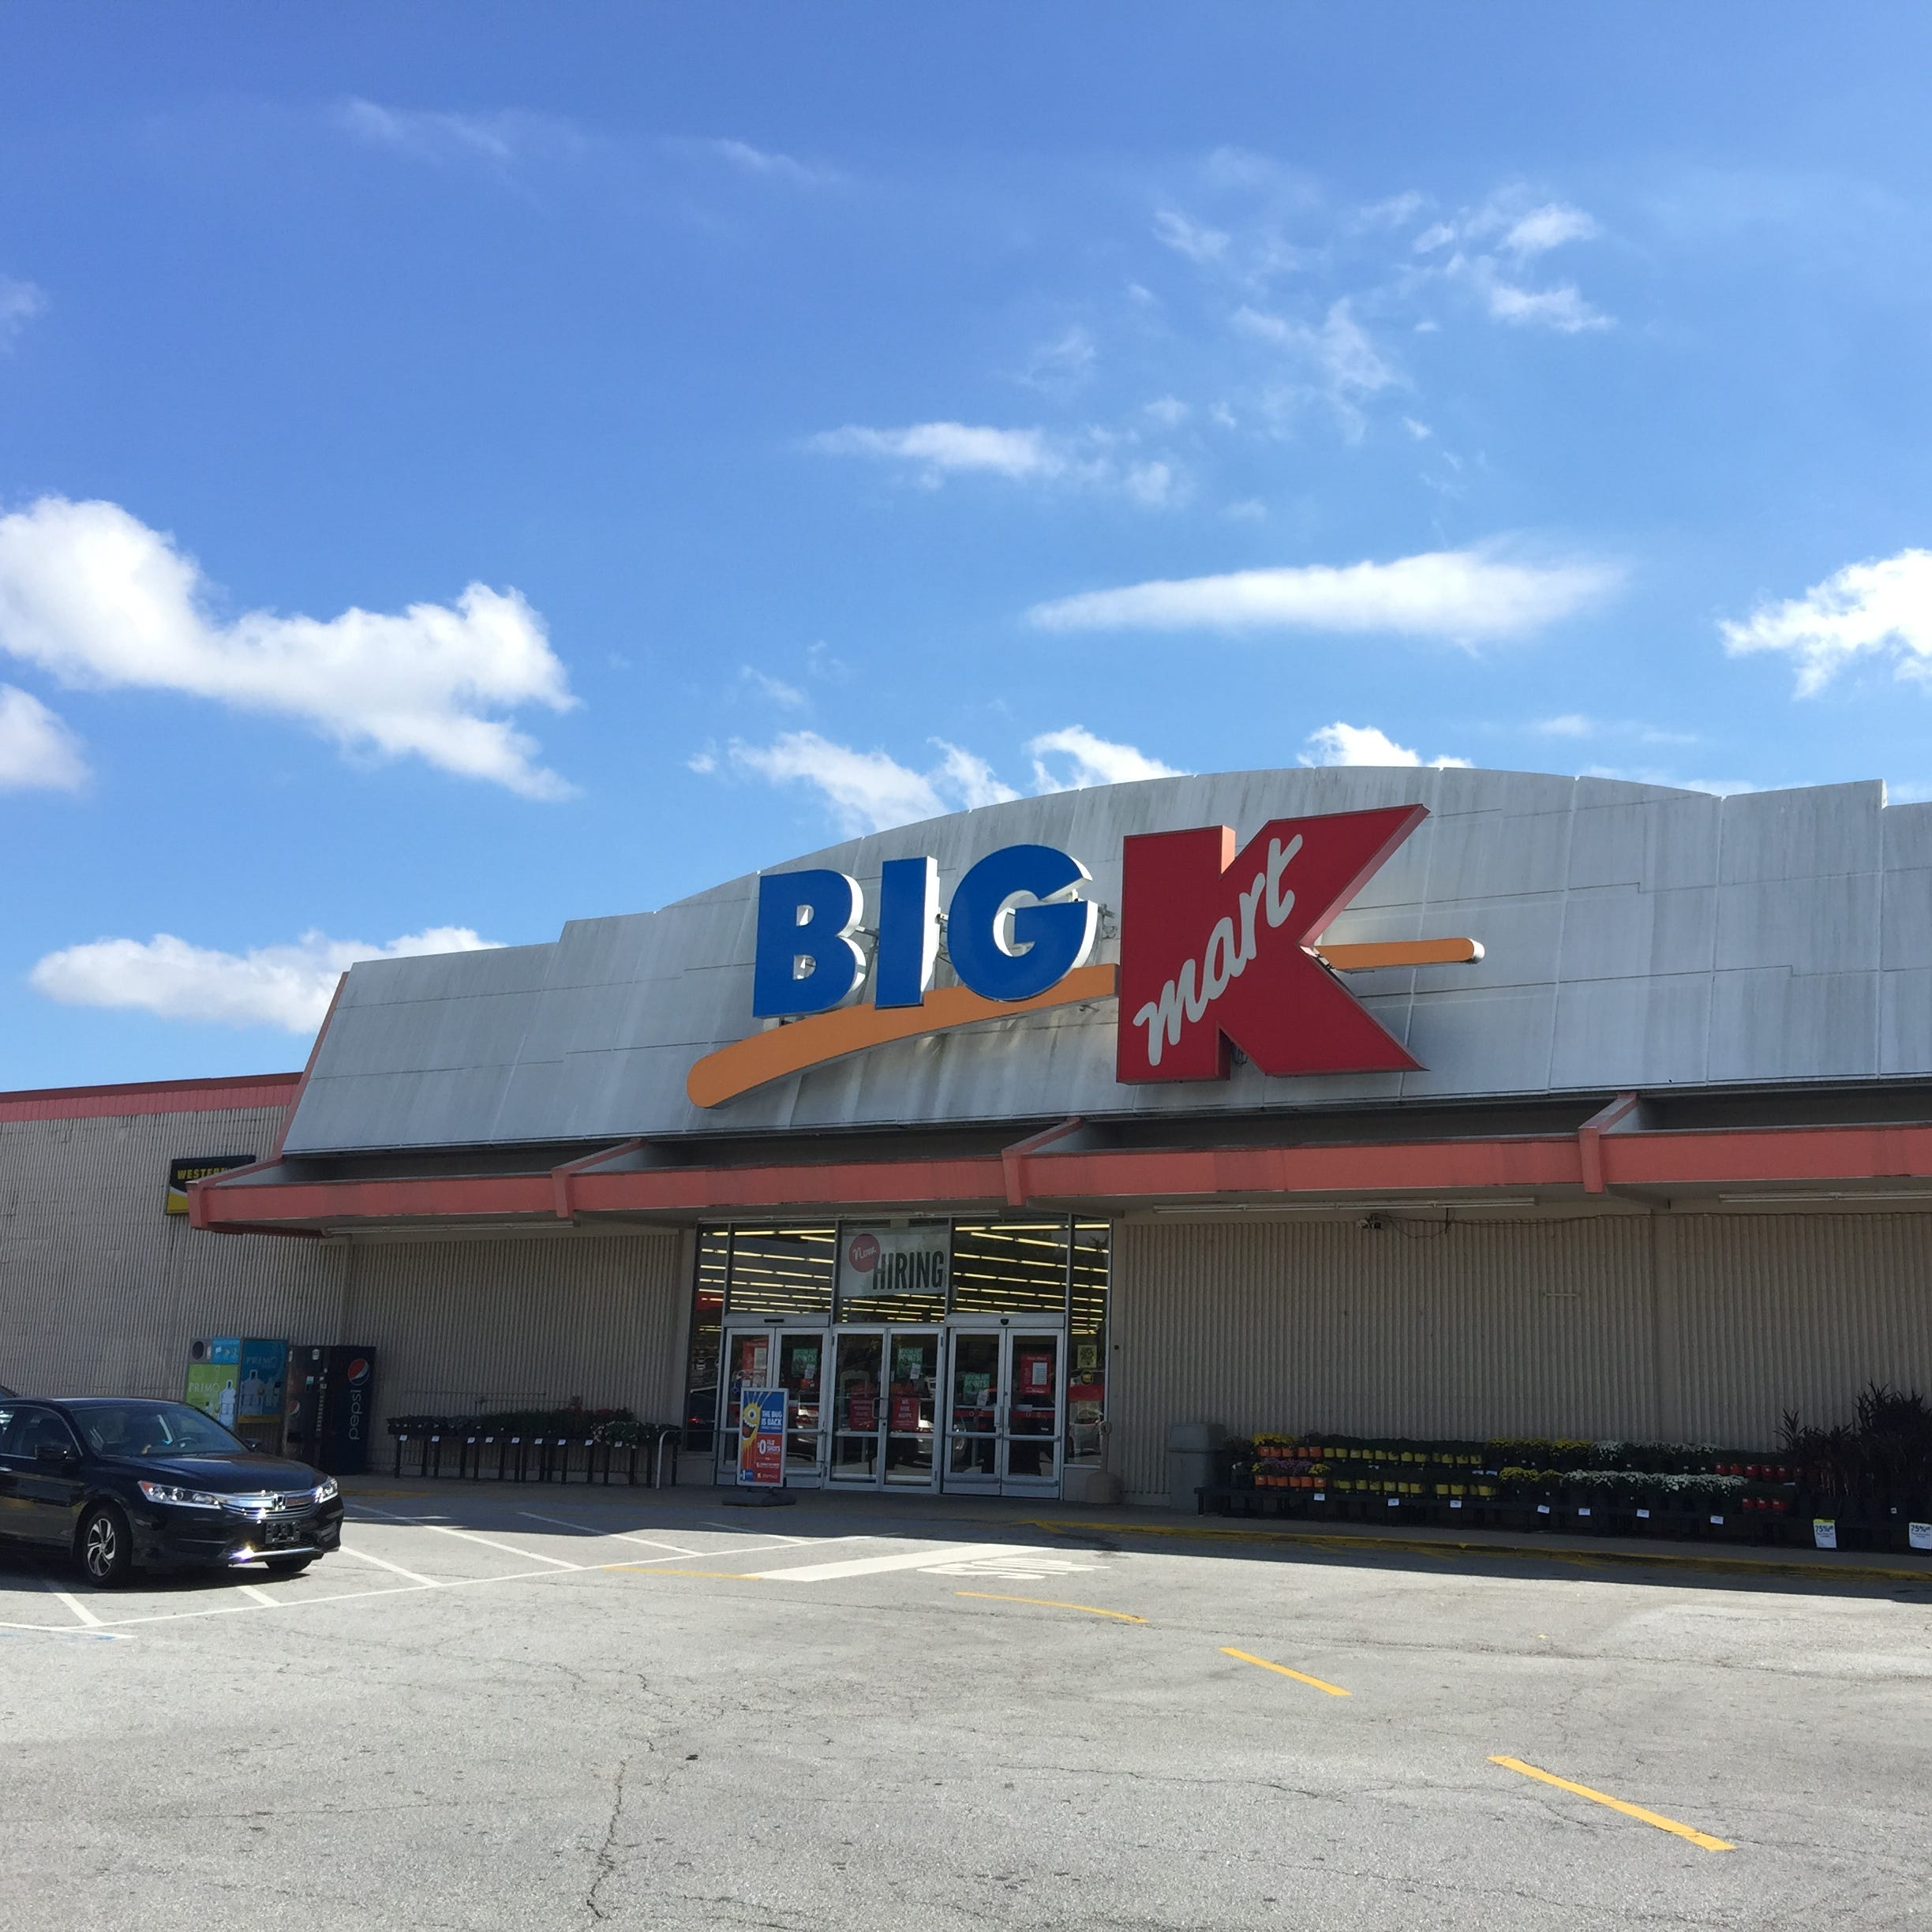 Mauldin Kmart to close amid Sears Holdings bankruptcy filing